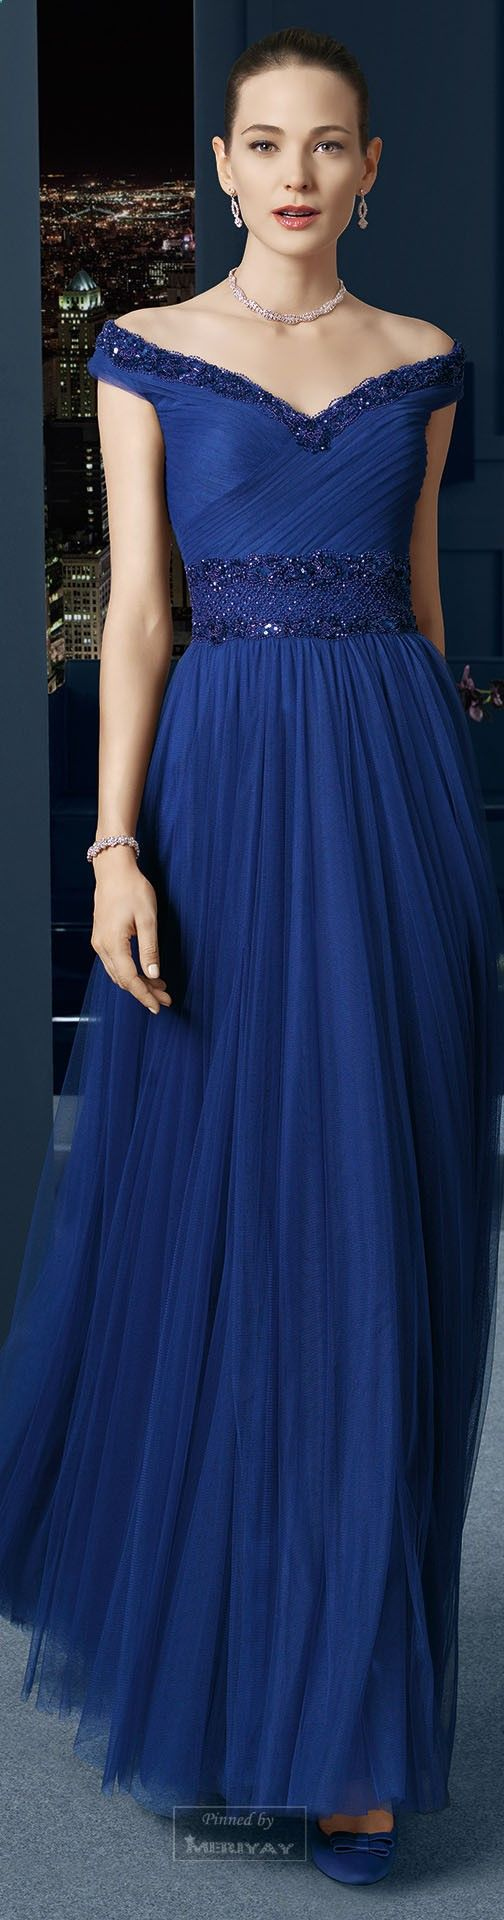 Okay yes it is just a dress I get this but it happens to be a TARDIS blue dress called the Rosa Clara. So yeah. Imma pin it.